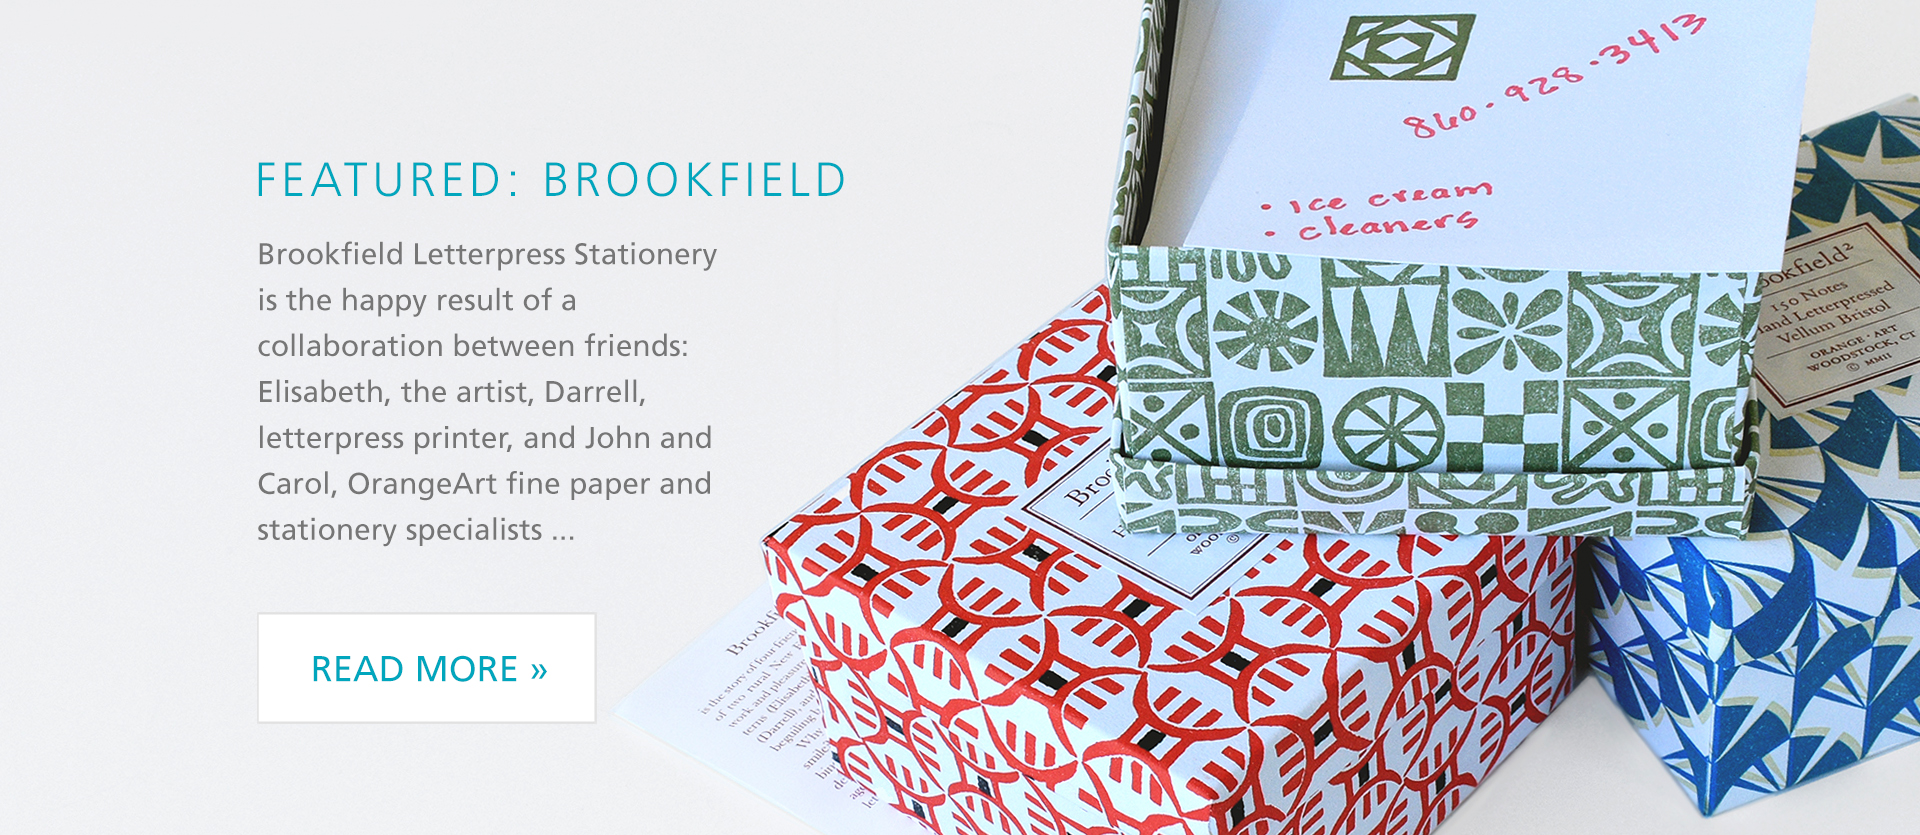 Featured Brand Brookfield Letterpress Stationery!